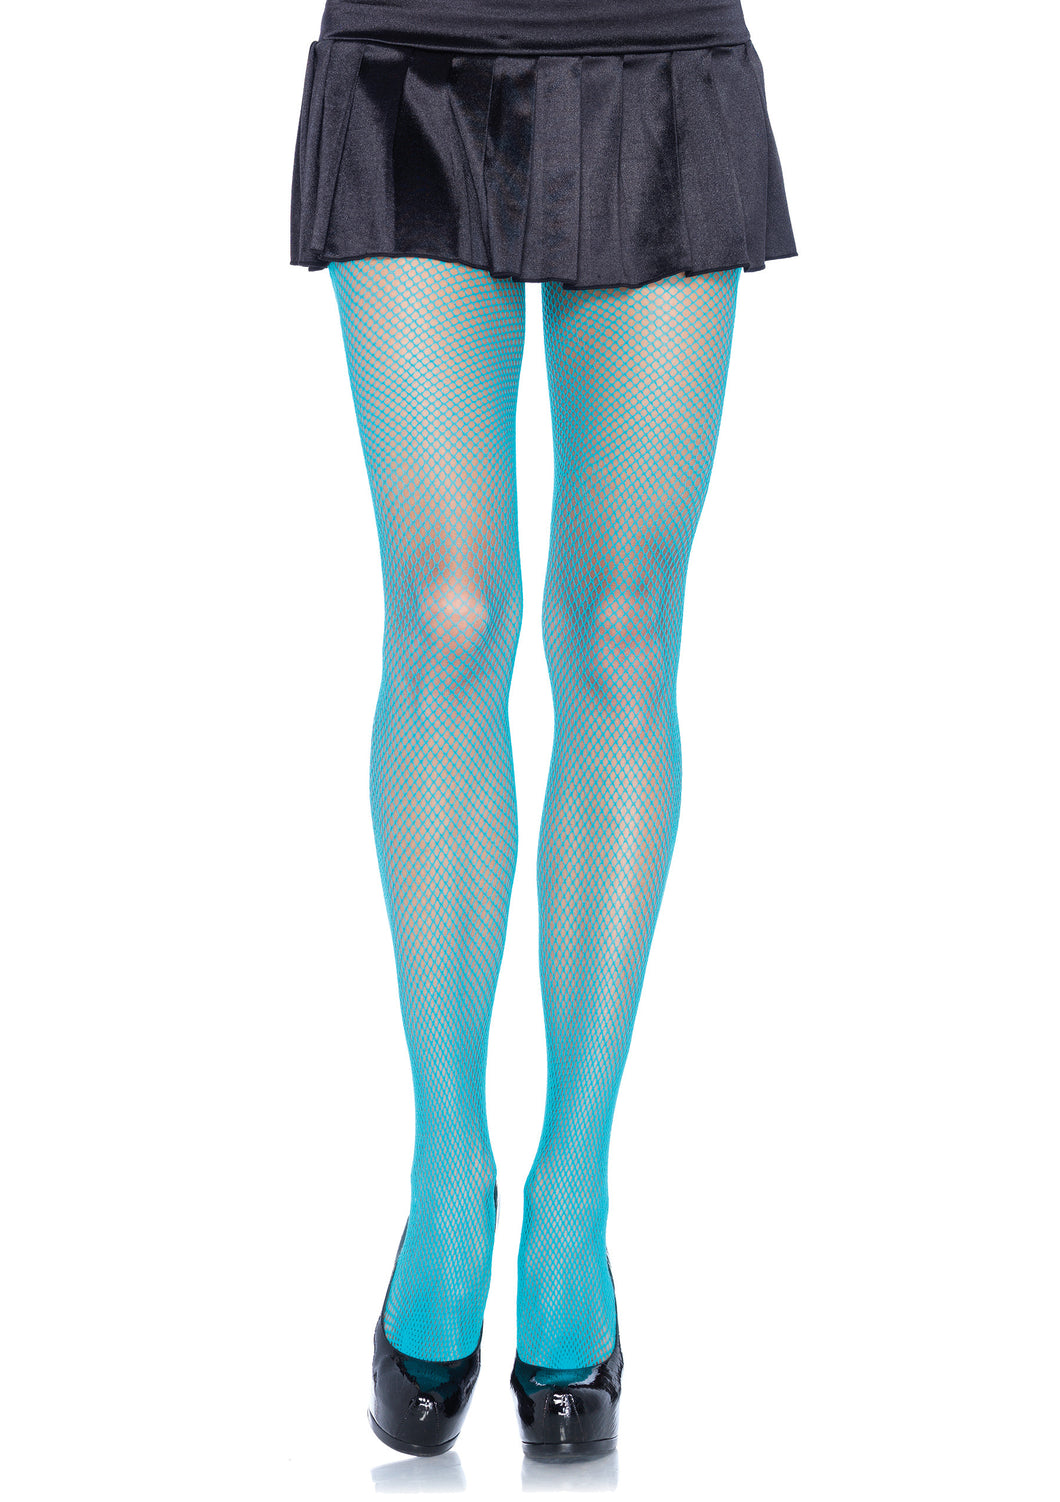 Neon Blue Fishnet Pantyhose